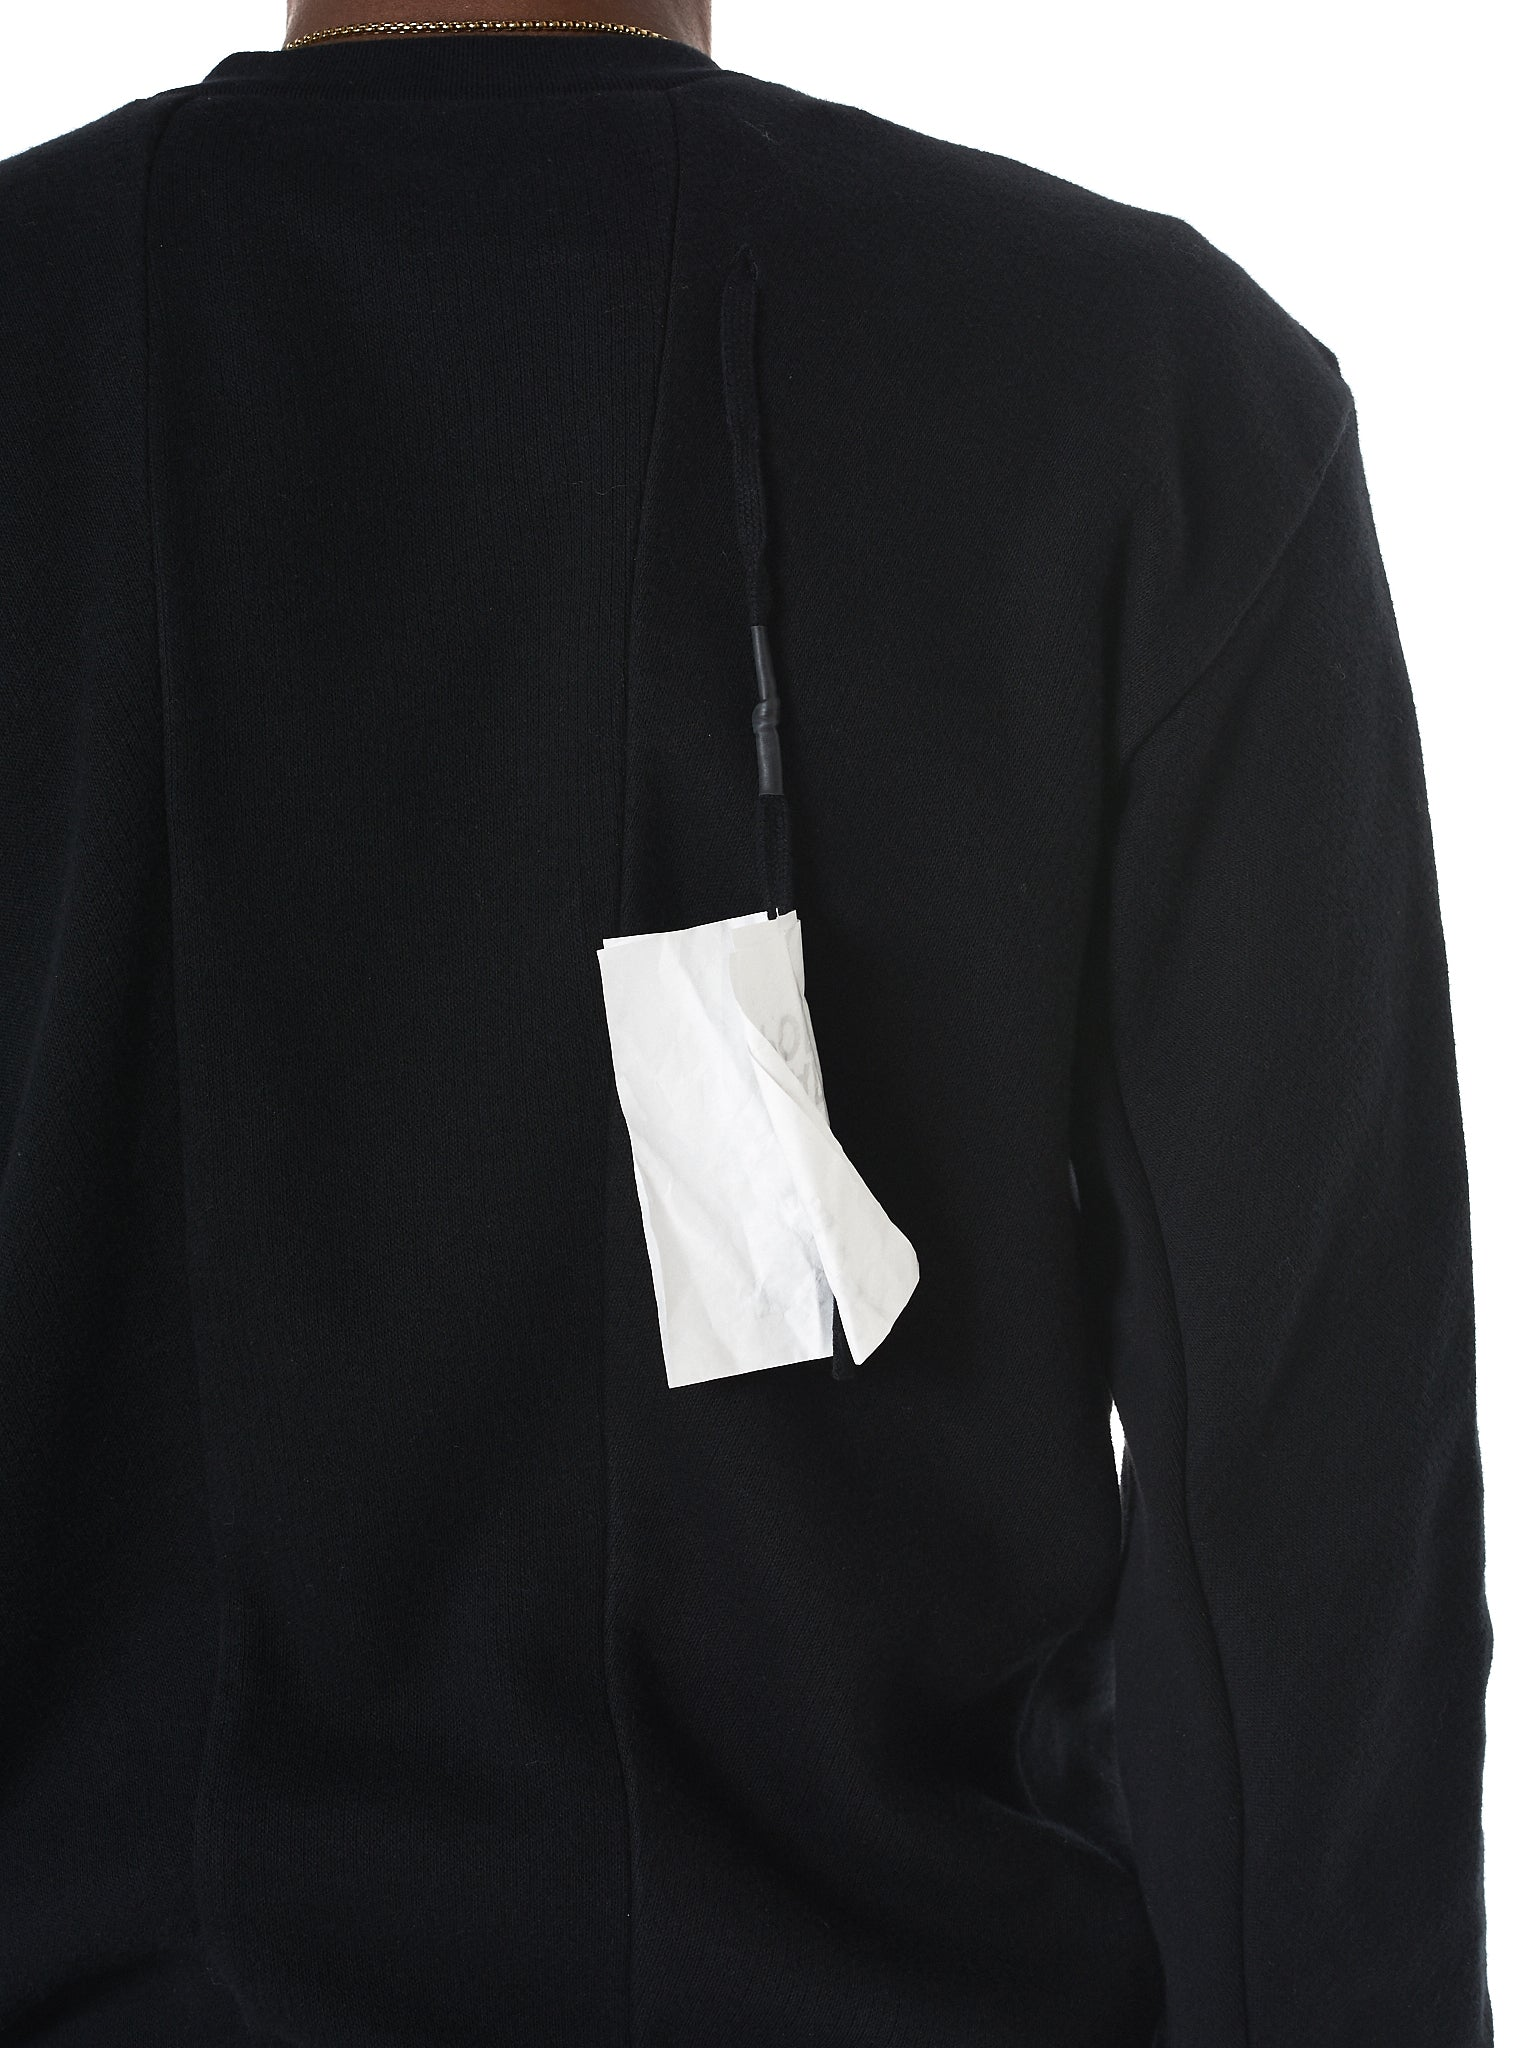 11 by Boris Bidjan - Hlorenzo Detail 2